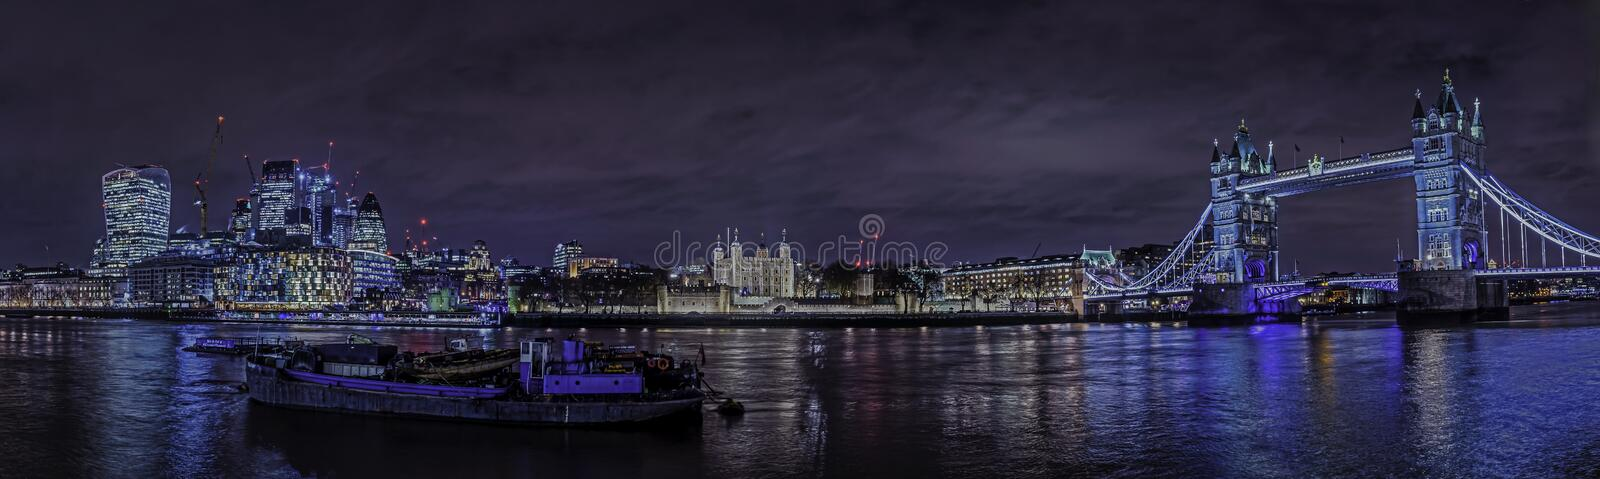 Tower bridge night time blues panorama royalty free stock images